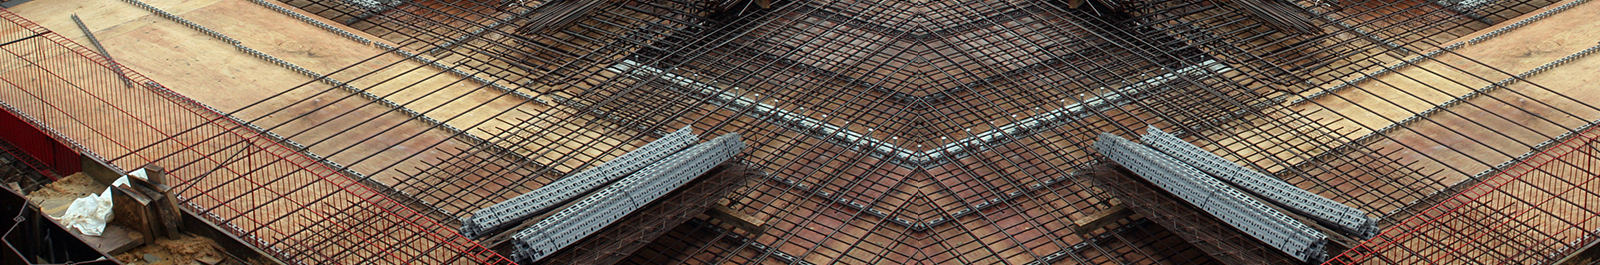 Formwork Panels manufacturer and supplier in Hyderabad India   PAAM Group